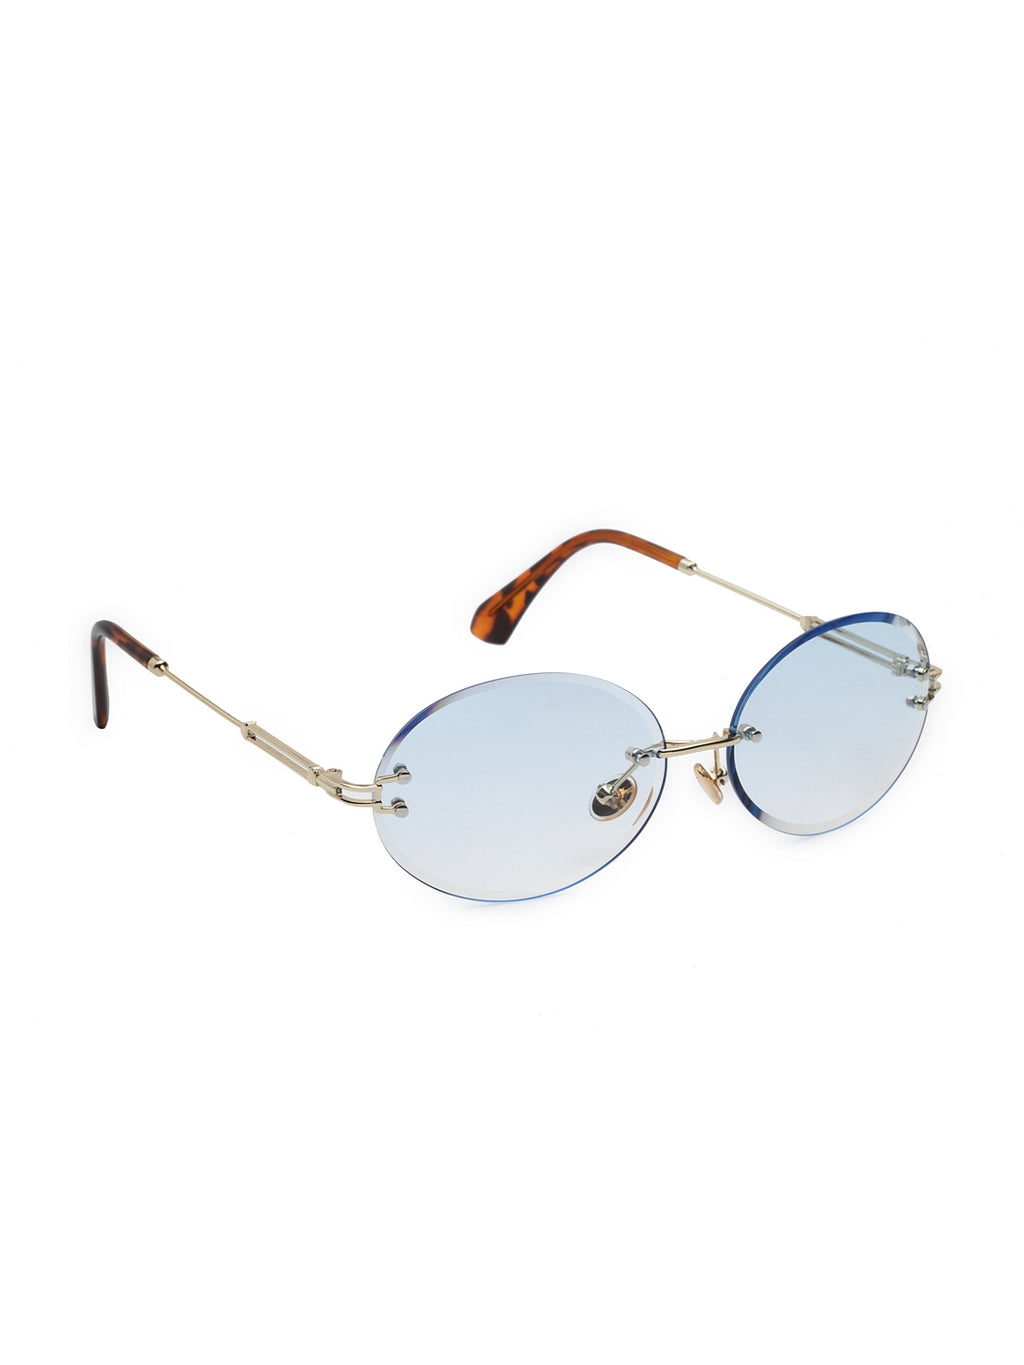 Avant-Garde Paris Rimless Eyeglasses Round Ocean Sunglasses for Women